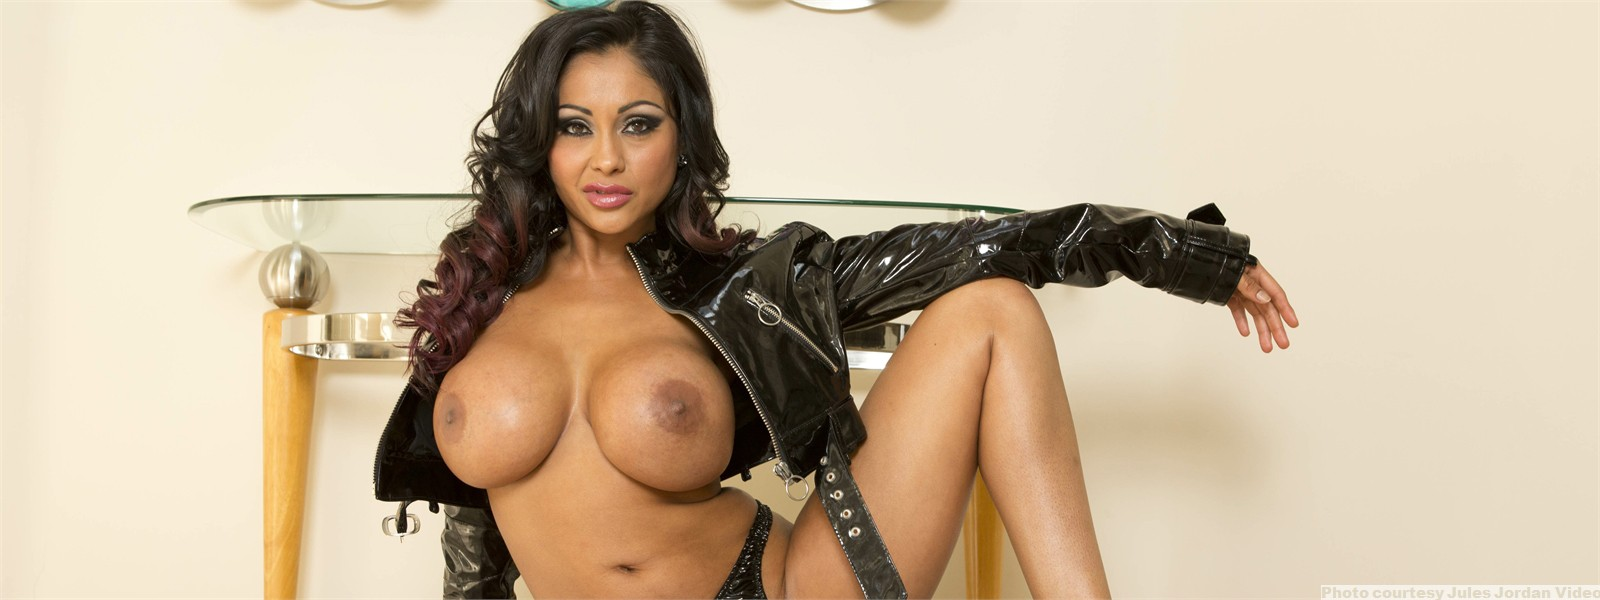 Video of priya rai